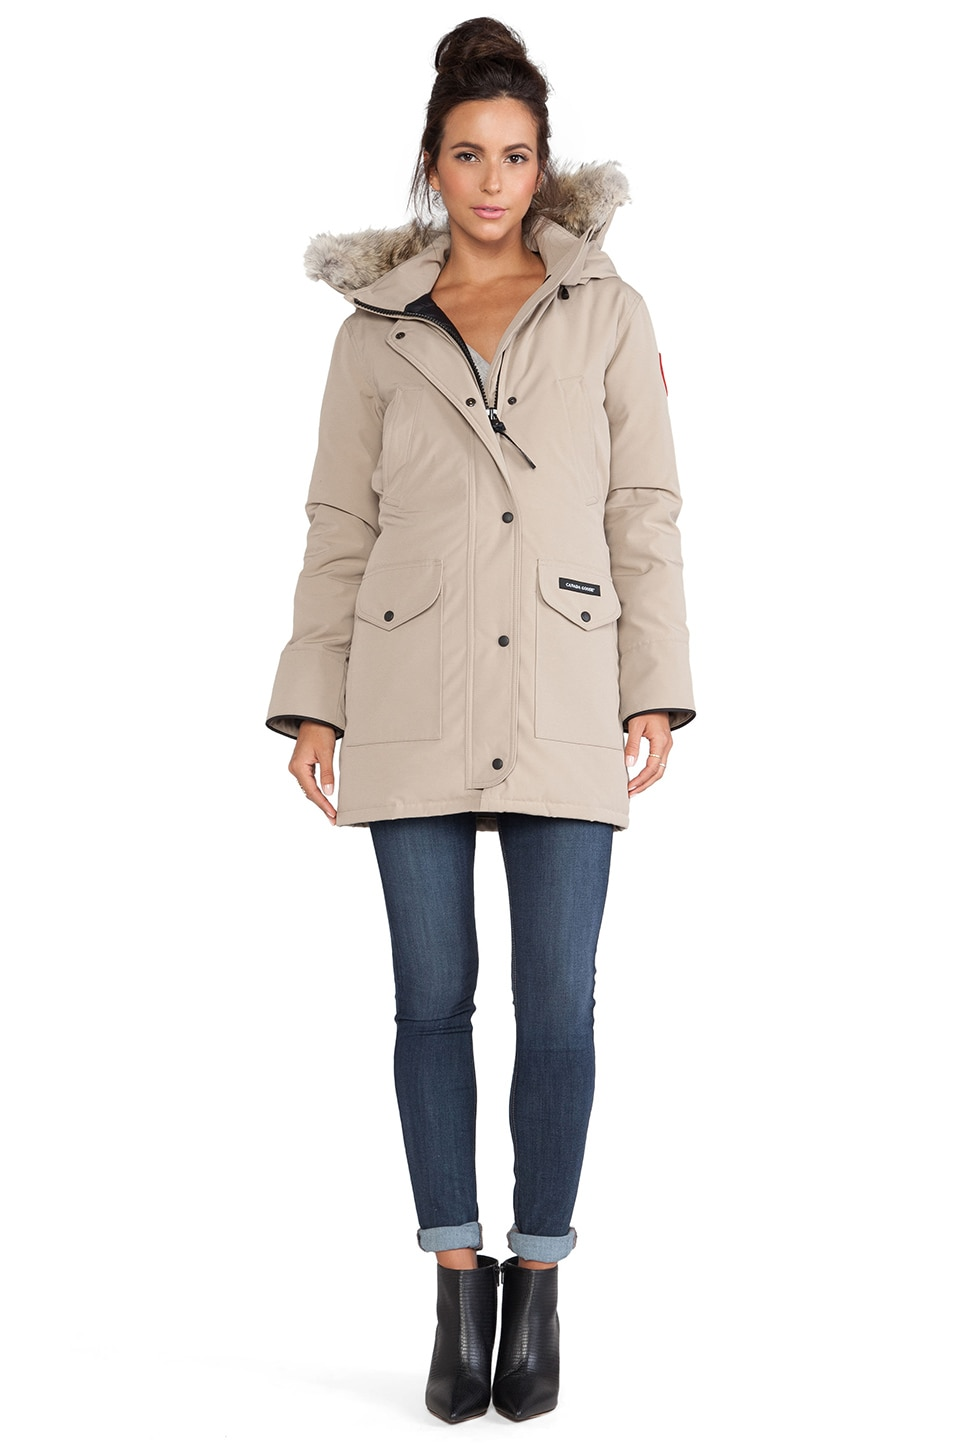 Canada Goose montebello parka replica price - Canada Goose Trillium Parka with Coyote Fur Trim in Tan | REVOLVE